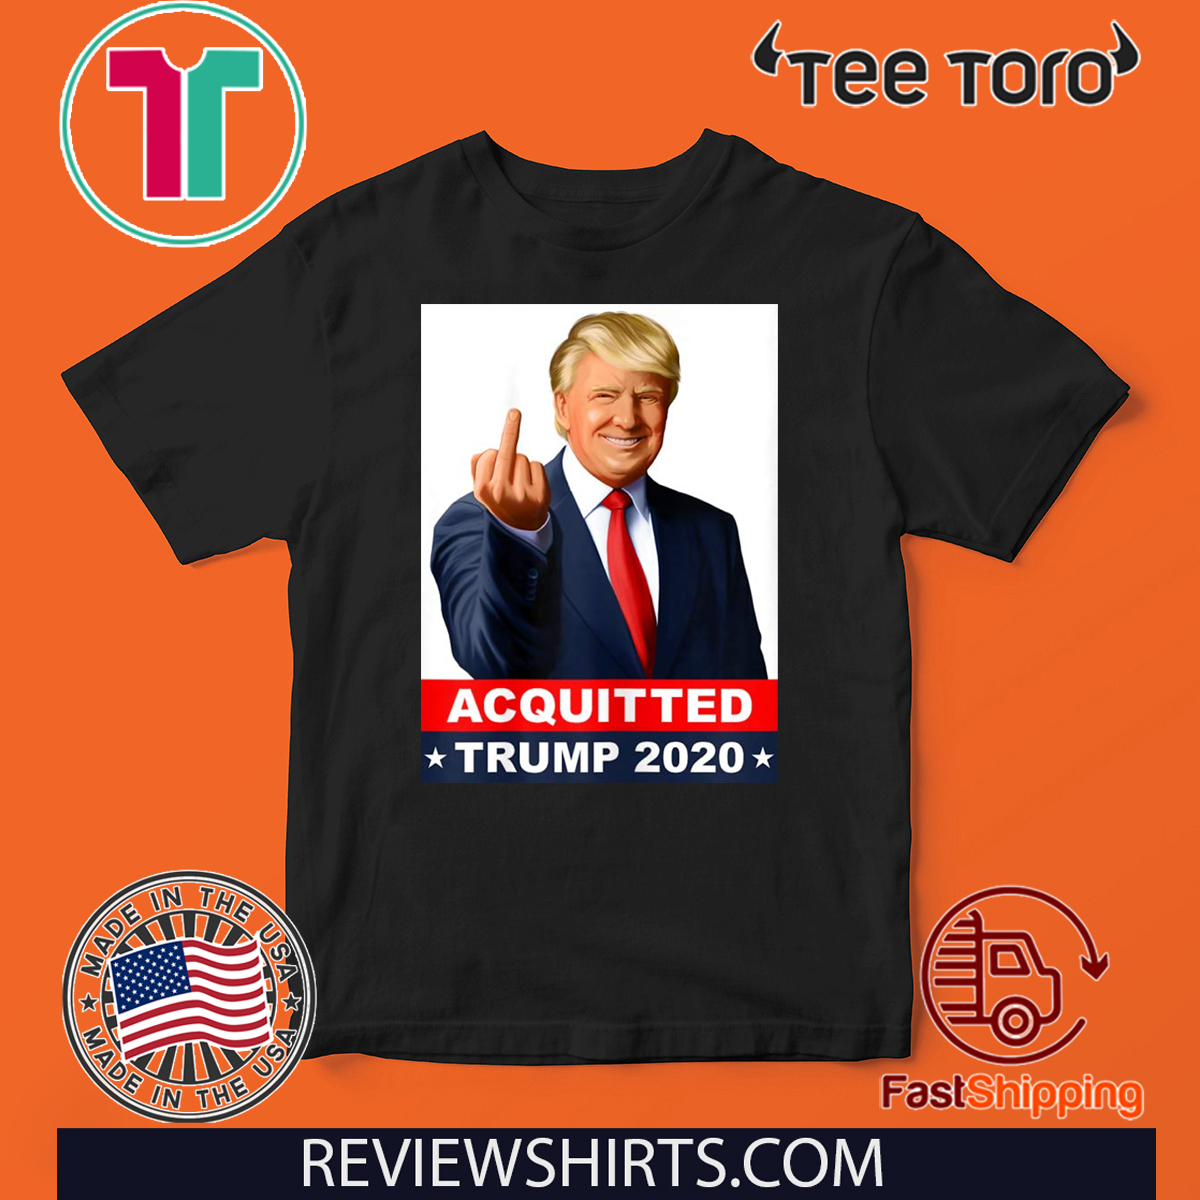 Trump Acquitted Anti-Impeachment Acquittal Victory Pro-Trump Shirt